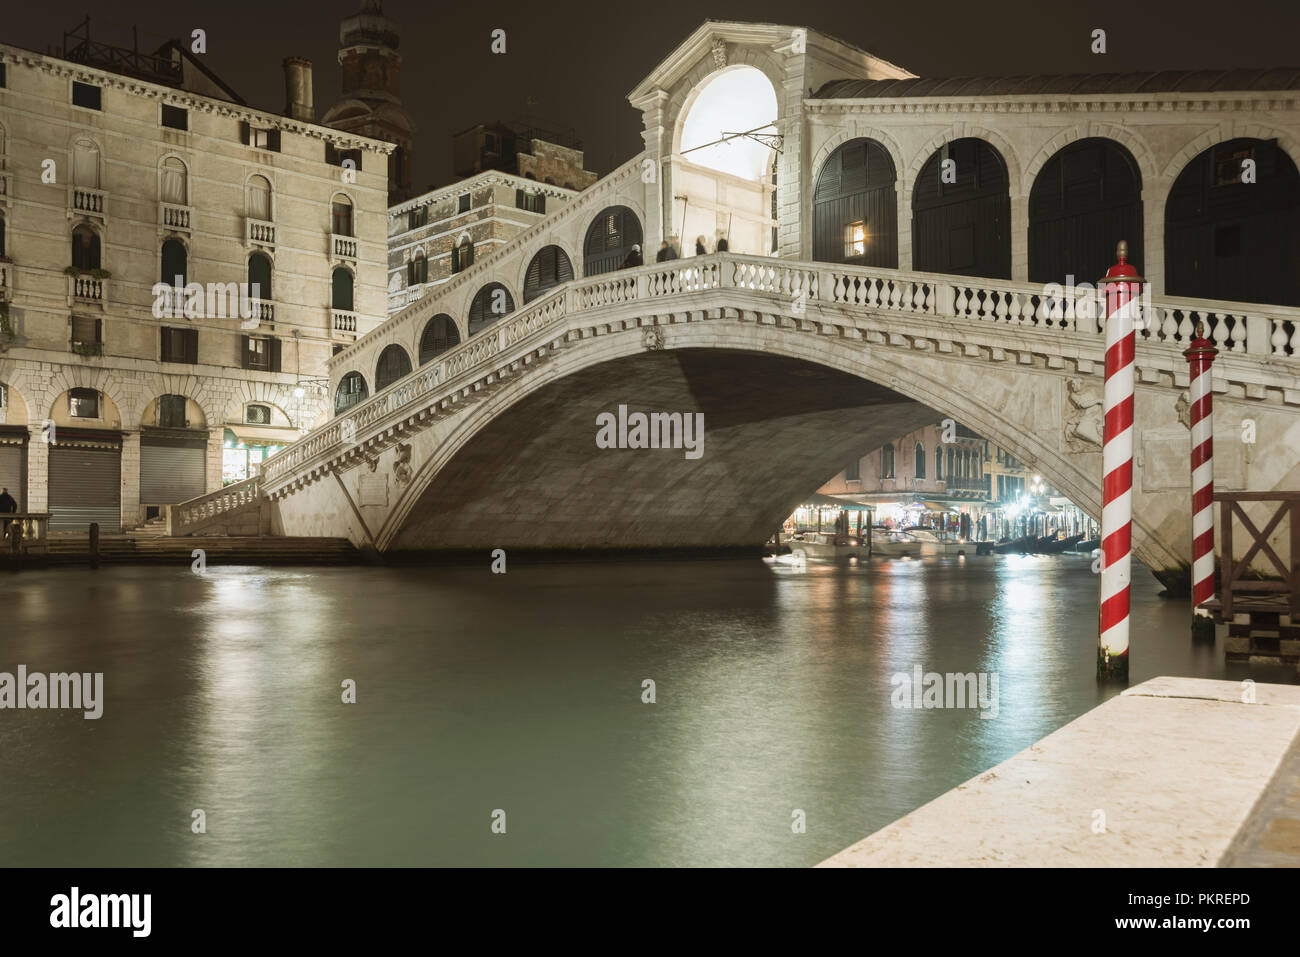 famous Rialto bridge illuminated by night above waters of Grand Canal - Stock Image